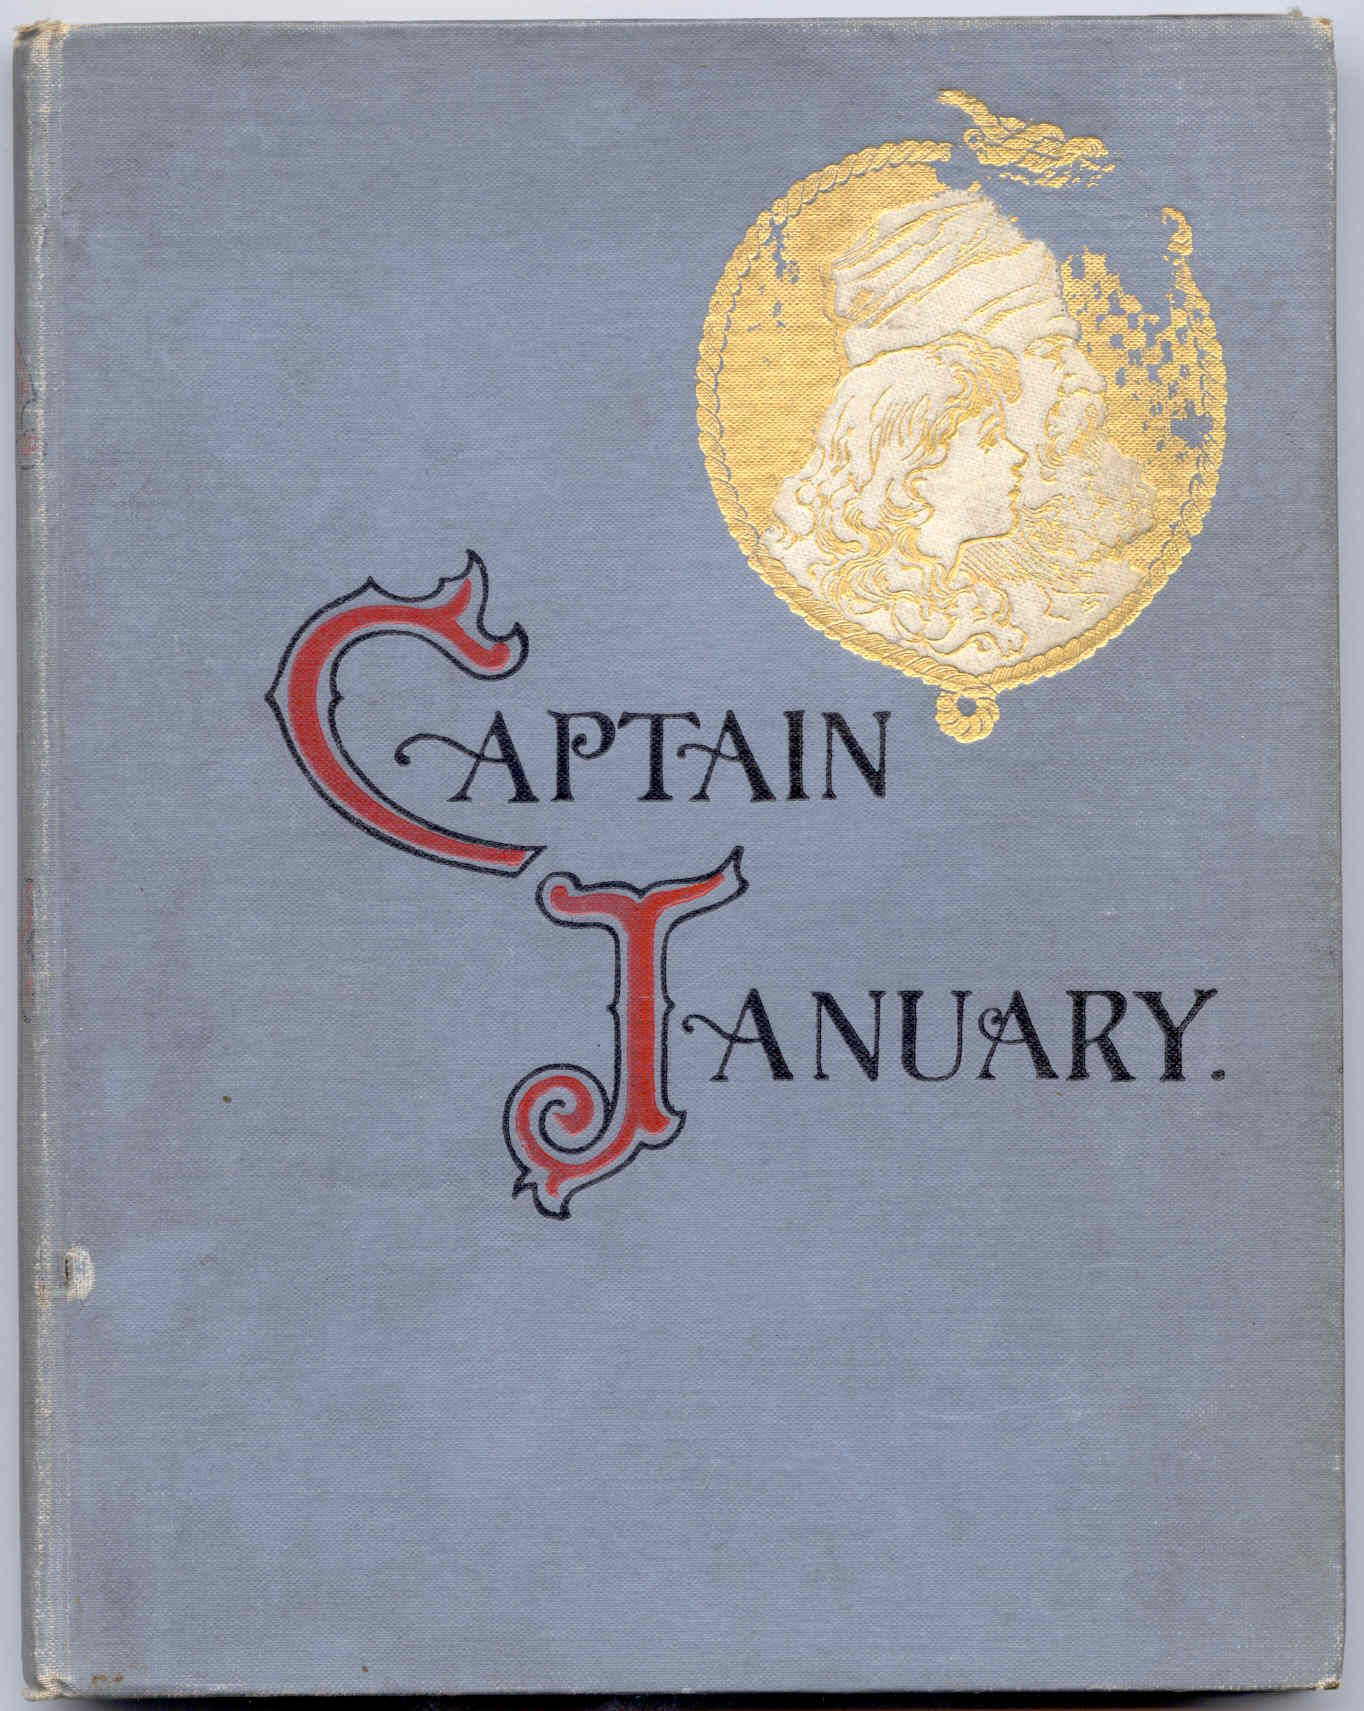 Captain January, 1892 (donated to our Friends of the Library.)